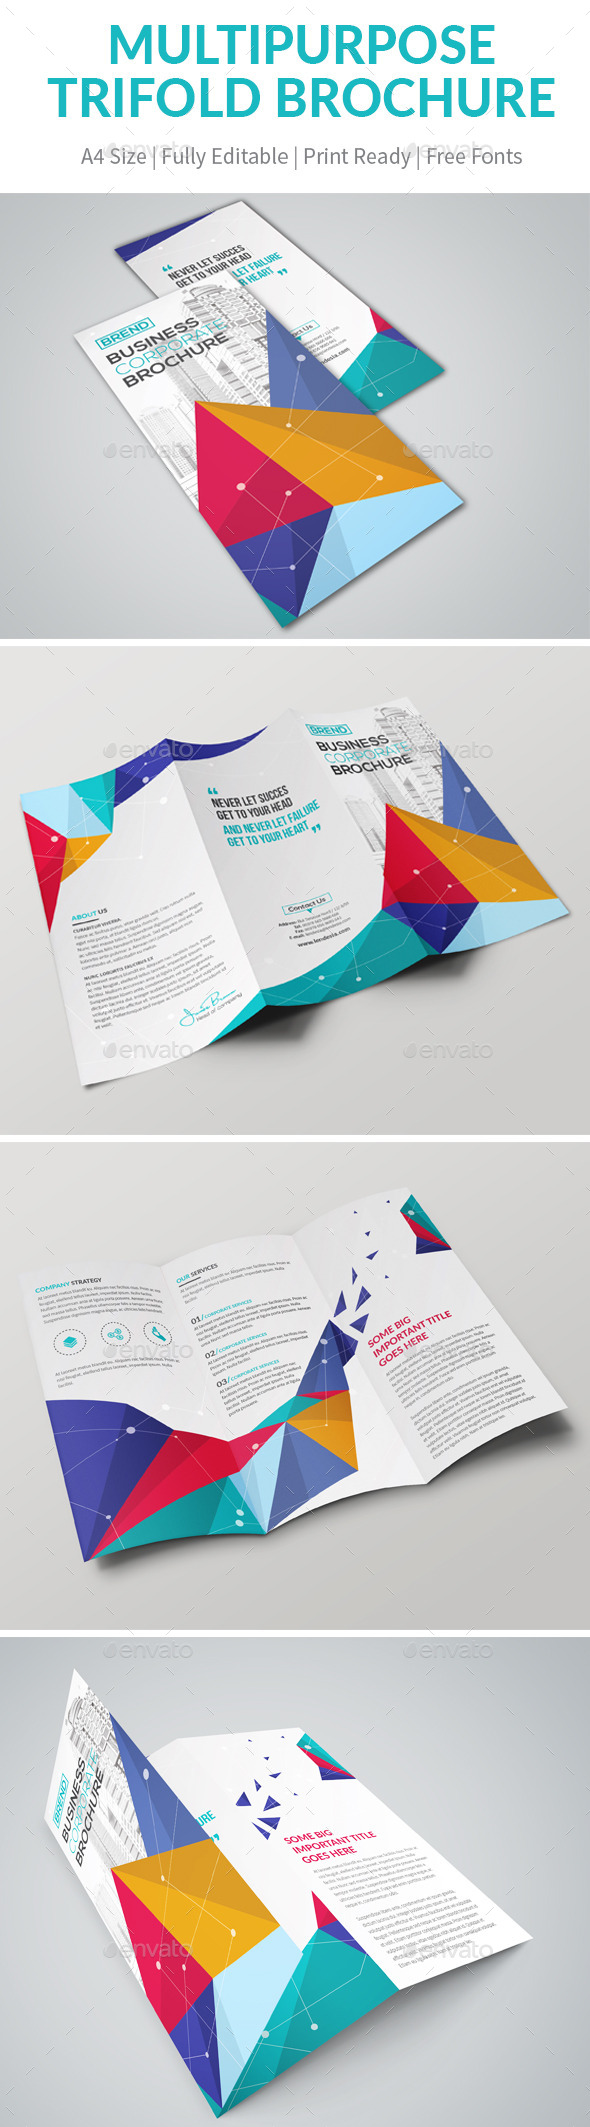 Colorfull Trifold Brochure - Brochures Print Templates